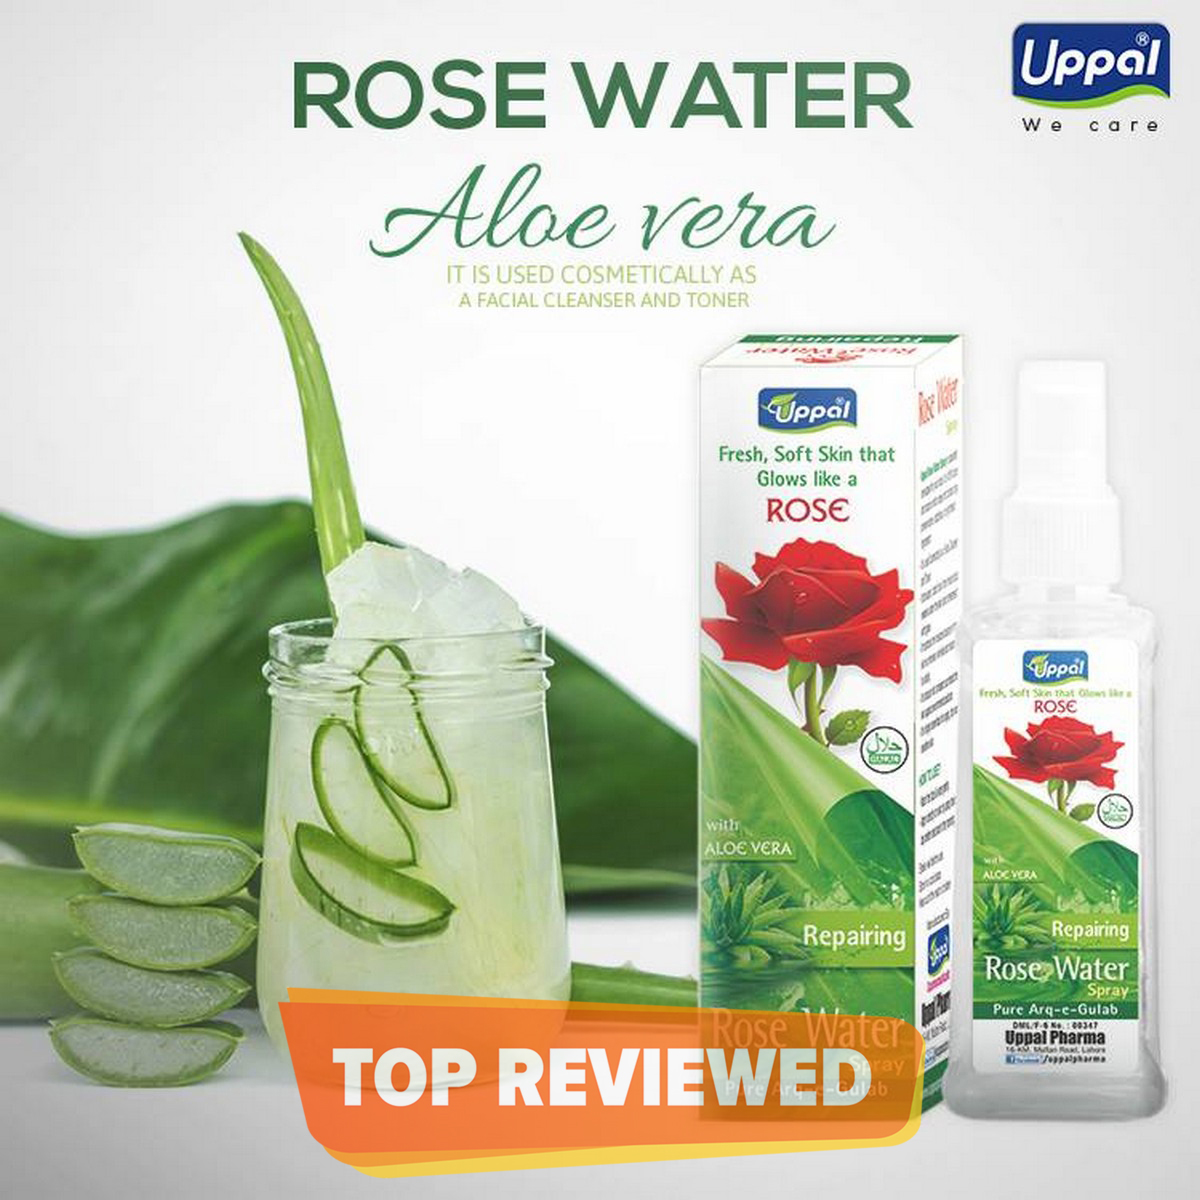 Rose Water Spray with Aloe Vera - Facial Spray cleanser and toner -  Soothes & repair skin, reduces acne, stretch marks and to make your skin healthy